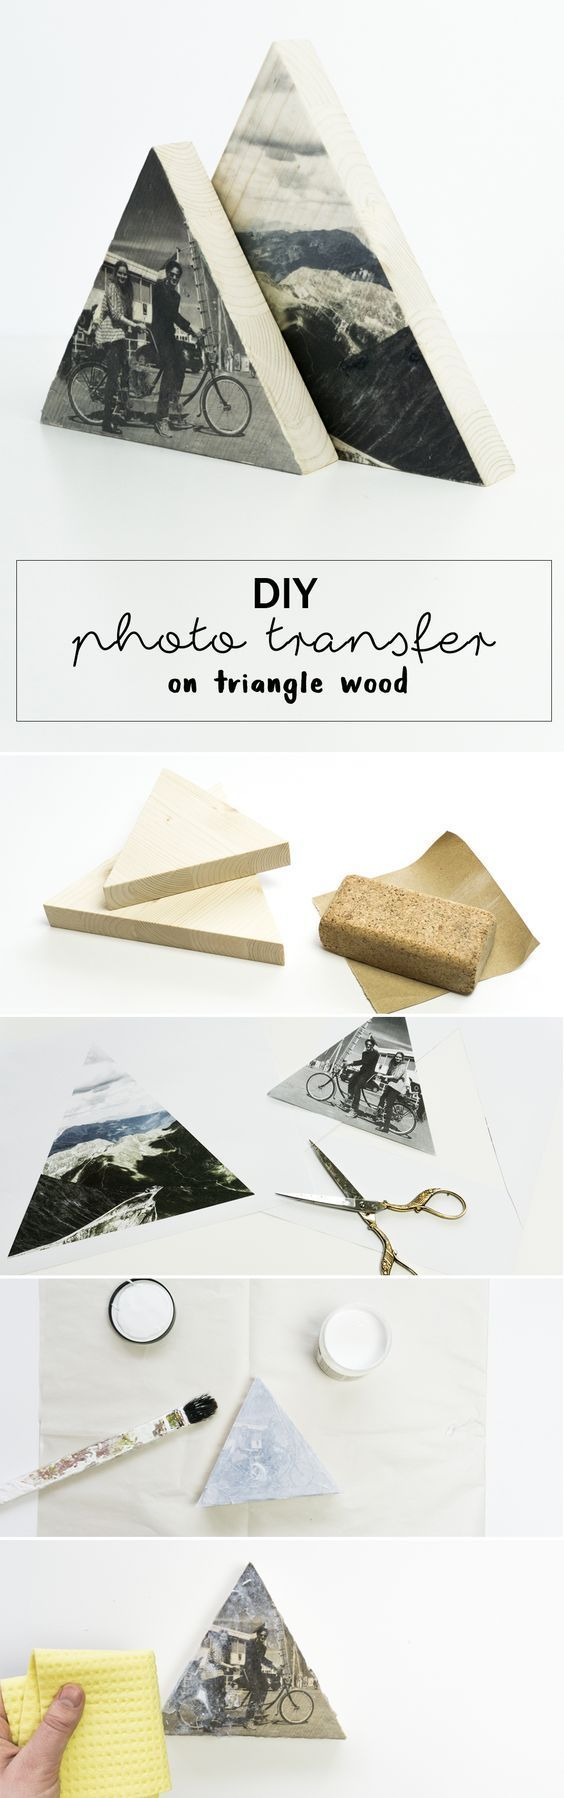 Photo on wood DIY – that's how it works!